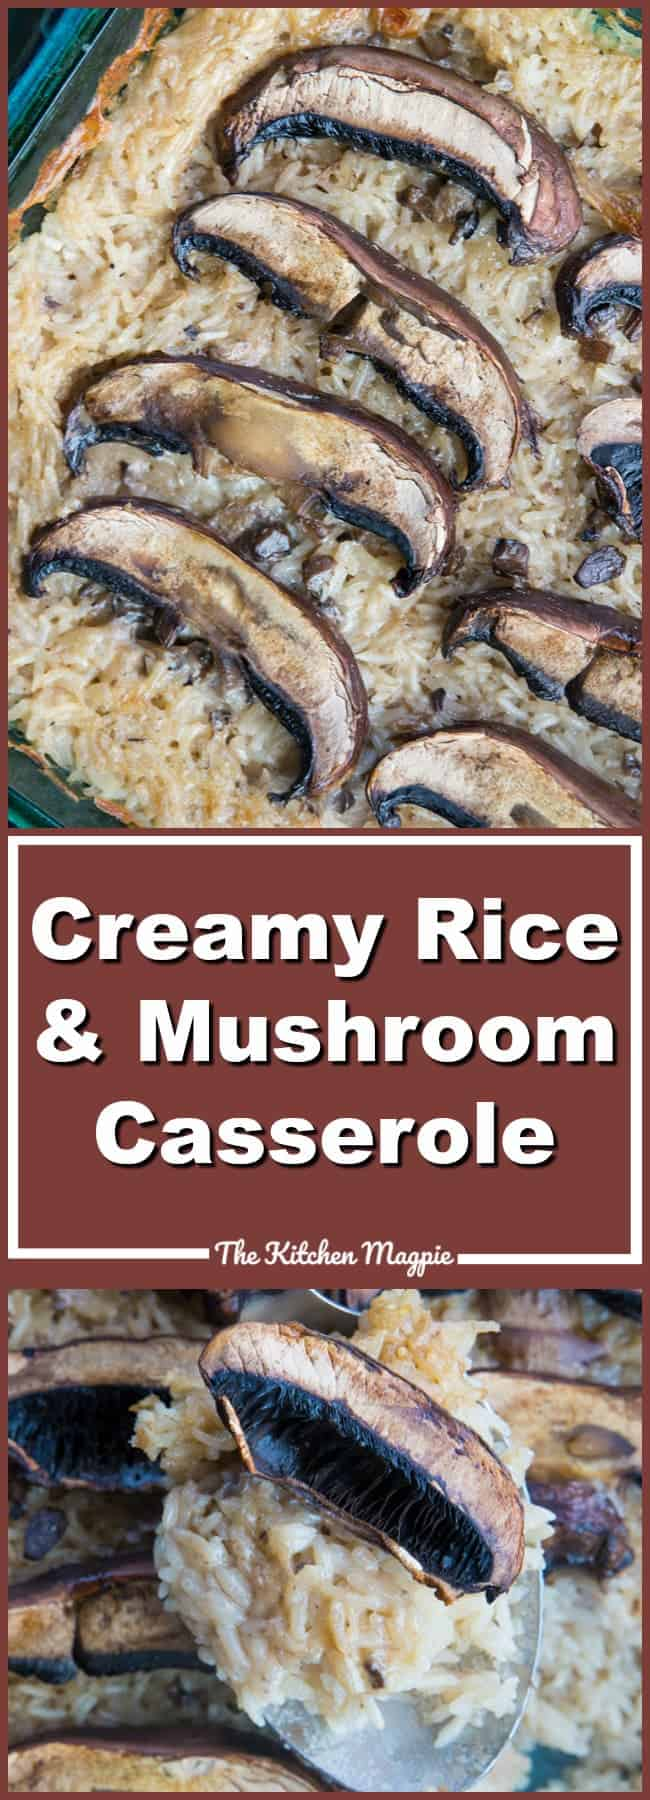 This easy and delicious Rice & Mushroom Casserole will be your new side dish for all dinners! Recipe from @kitchenmagpie #dinner #supper #recipeoftheday #rice #mushroom #casserole #recipes #recipe